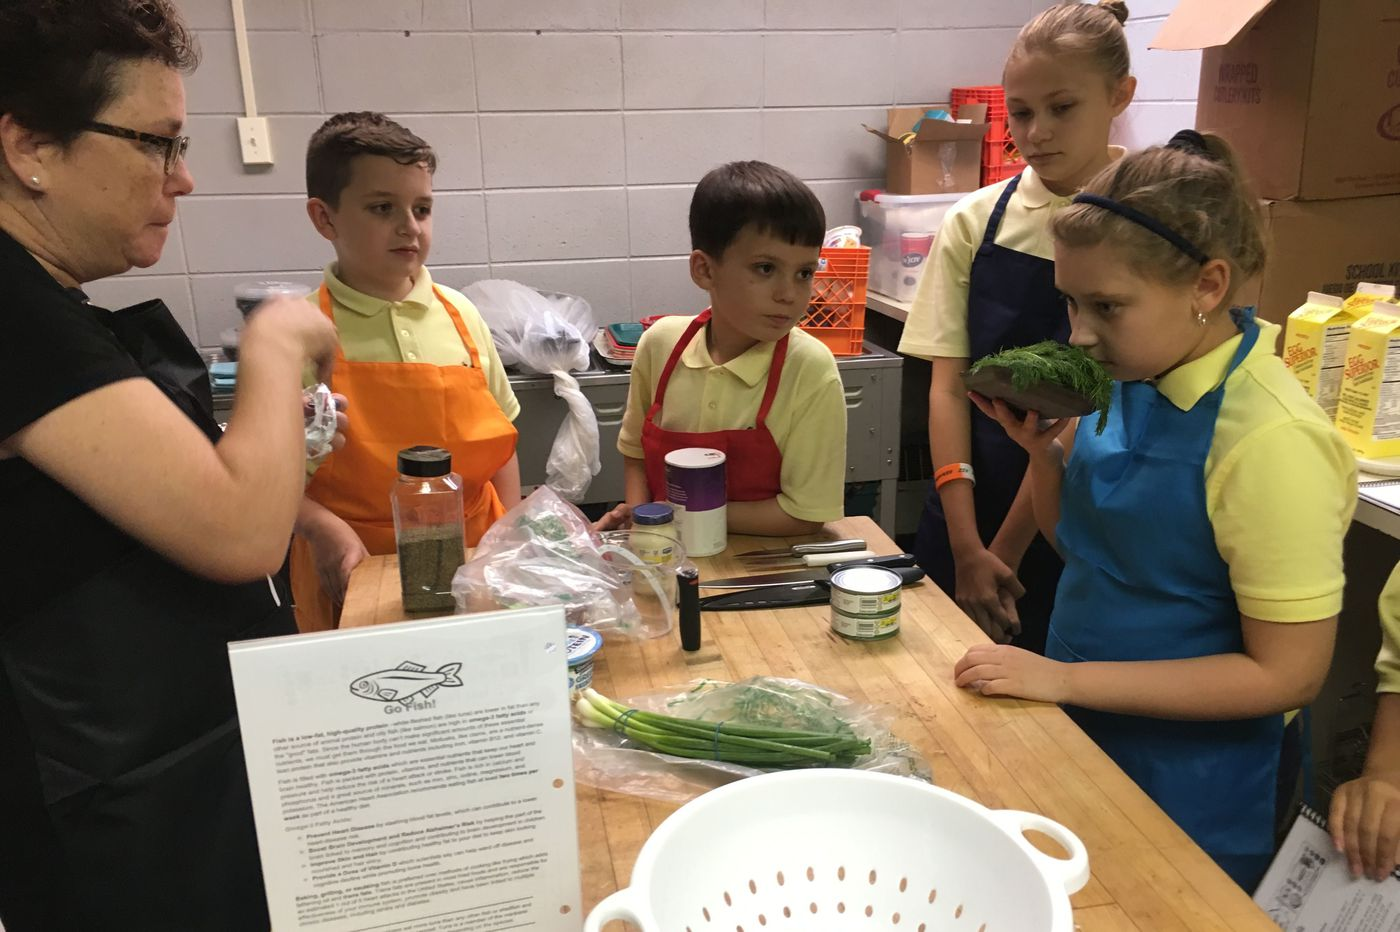 Learning that trying something new can be brave | My Daughter's Kitchen